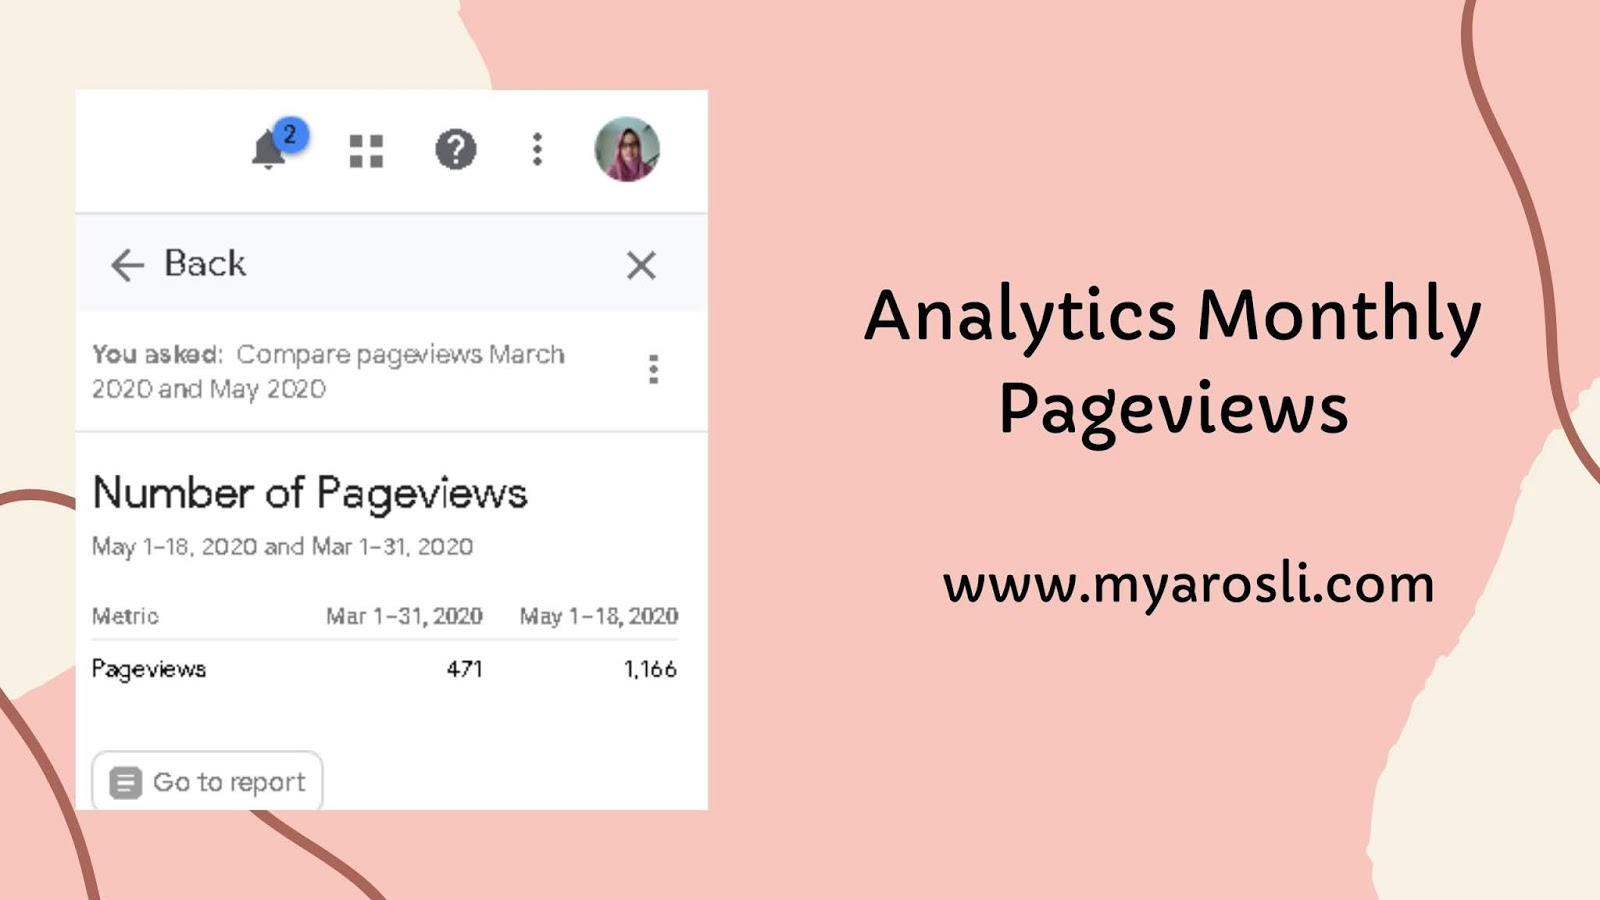 analytics monthly pageviews